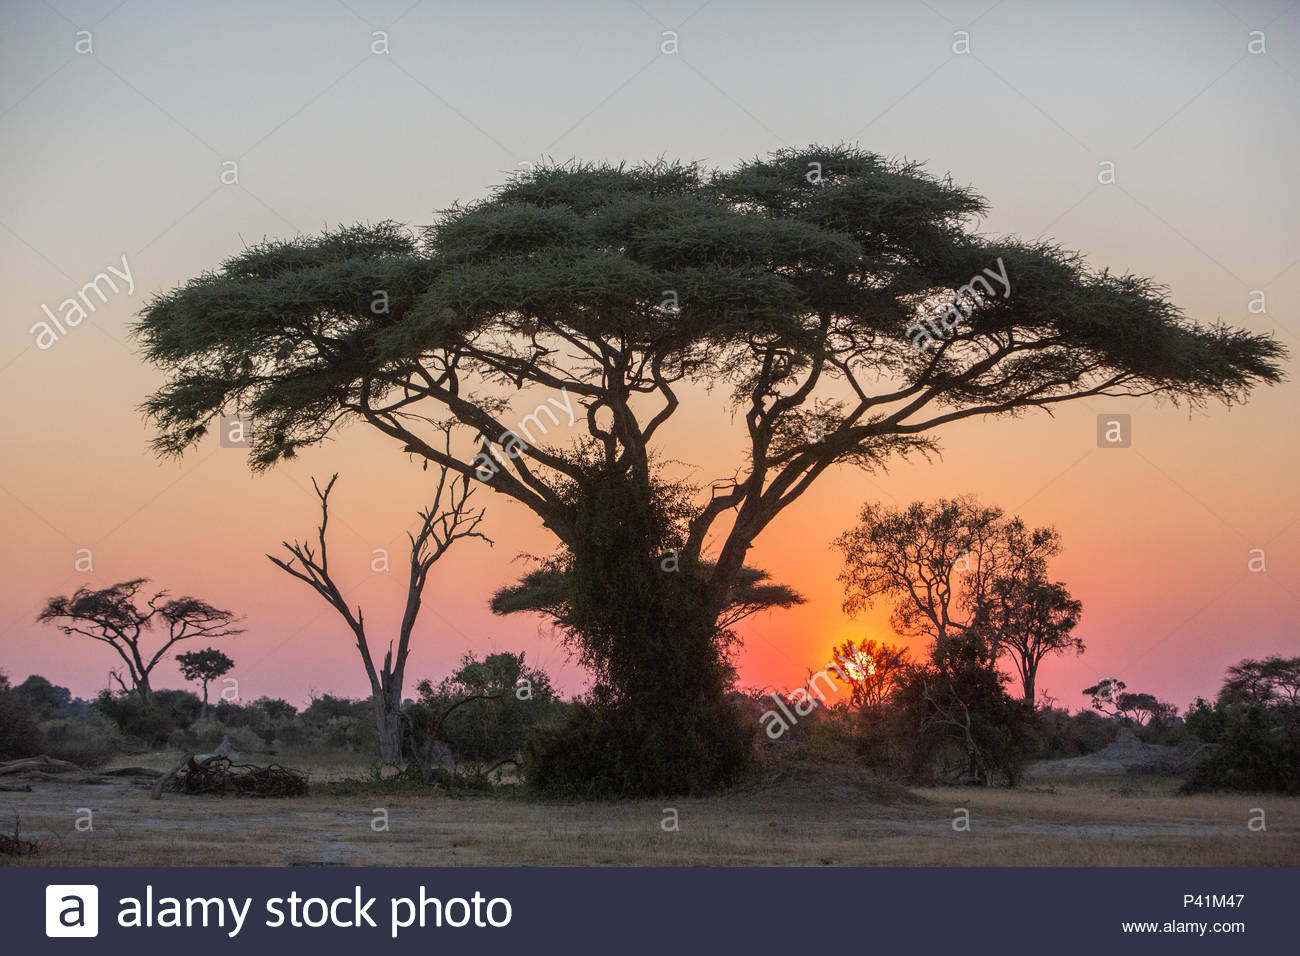 A tree canopy at sunrise on Chief's Island in the Moremi Game Reserve. - Stock Image